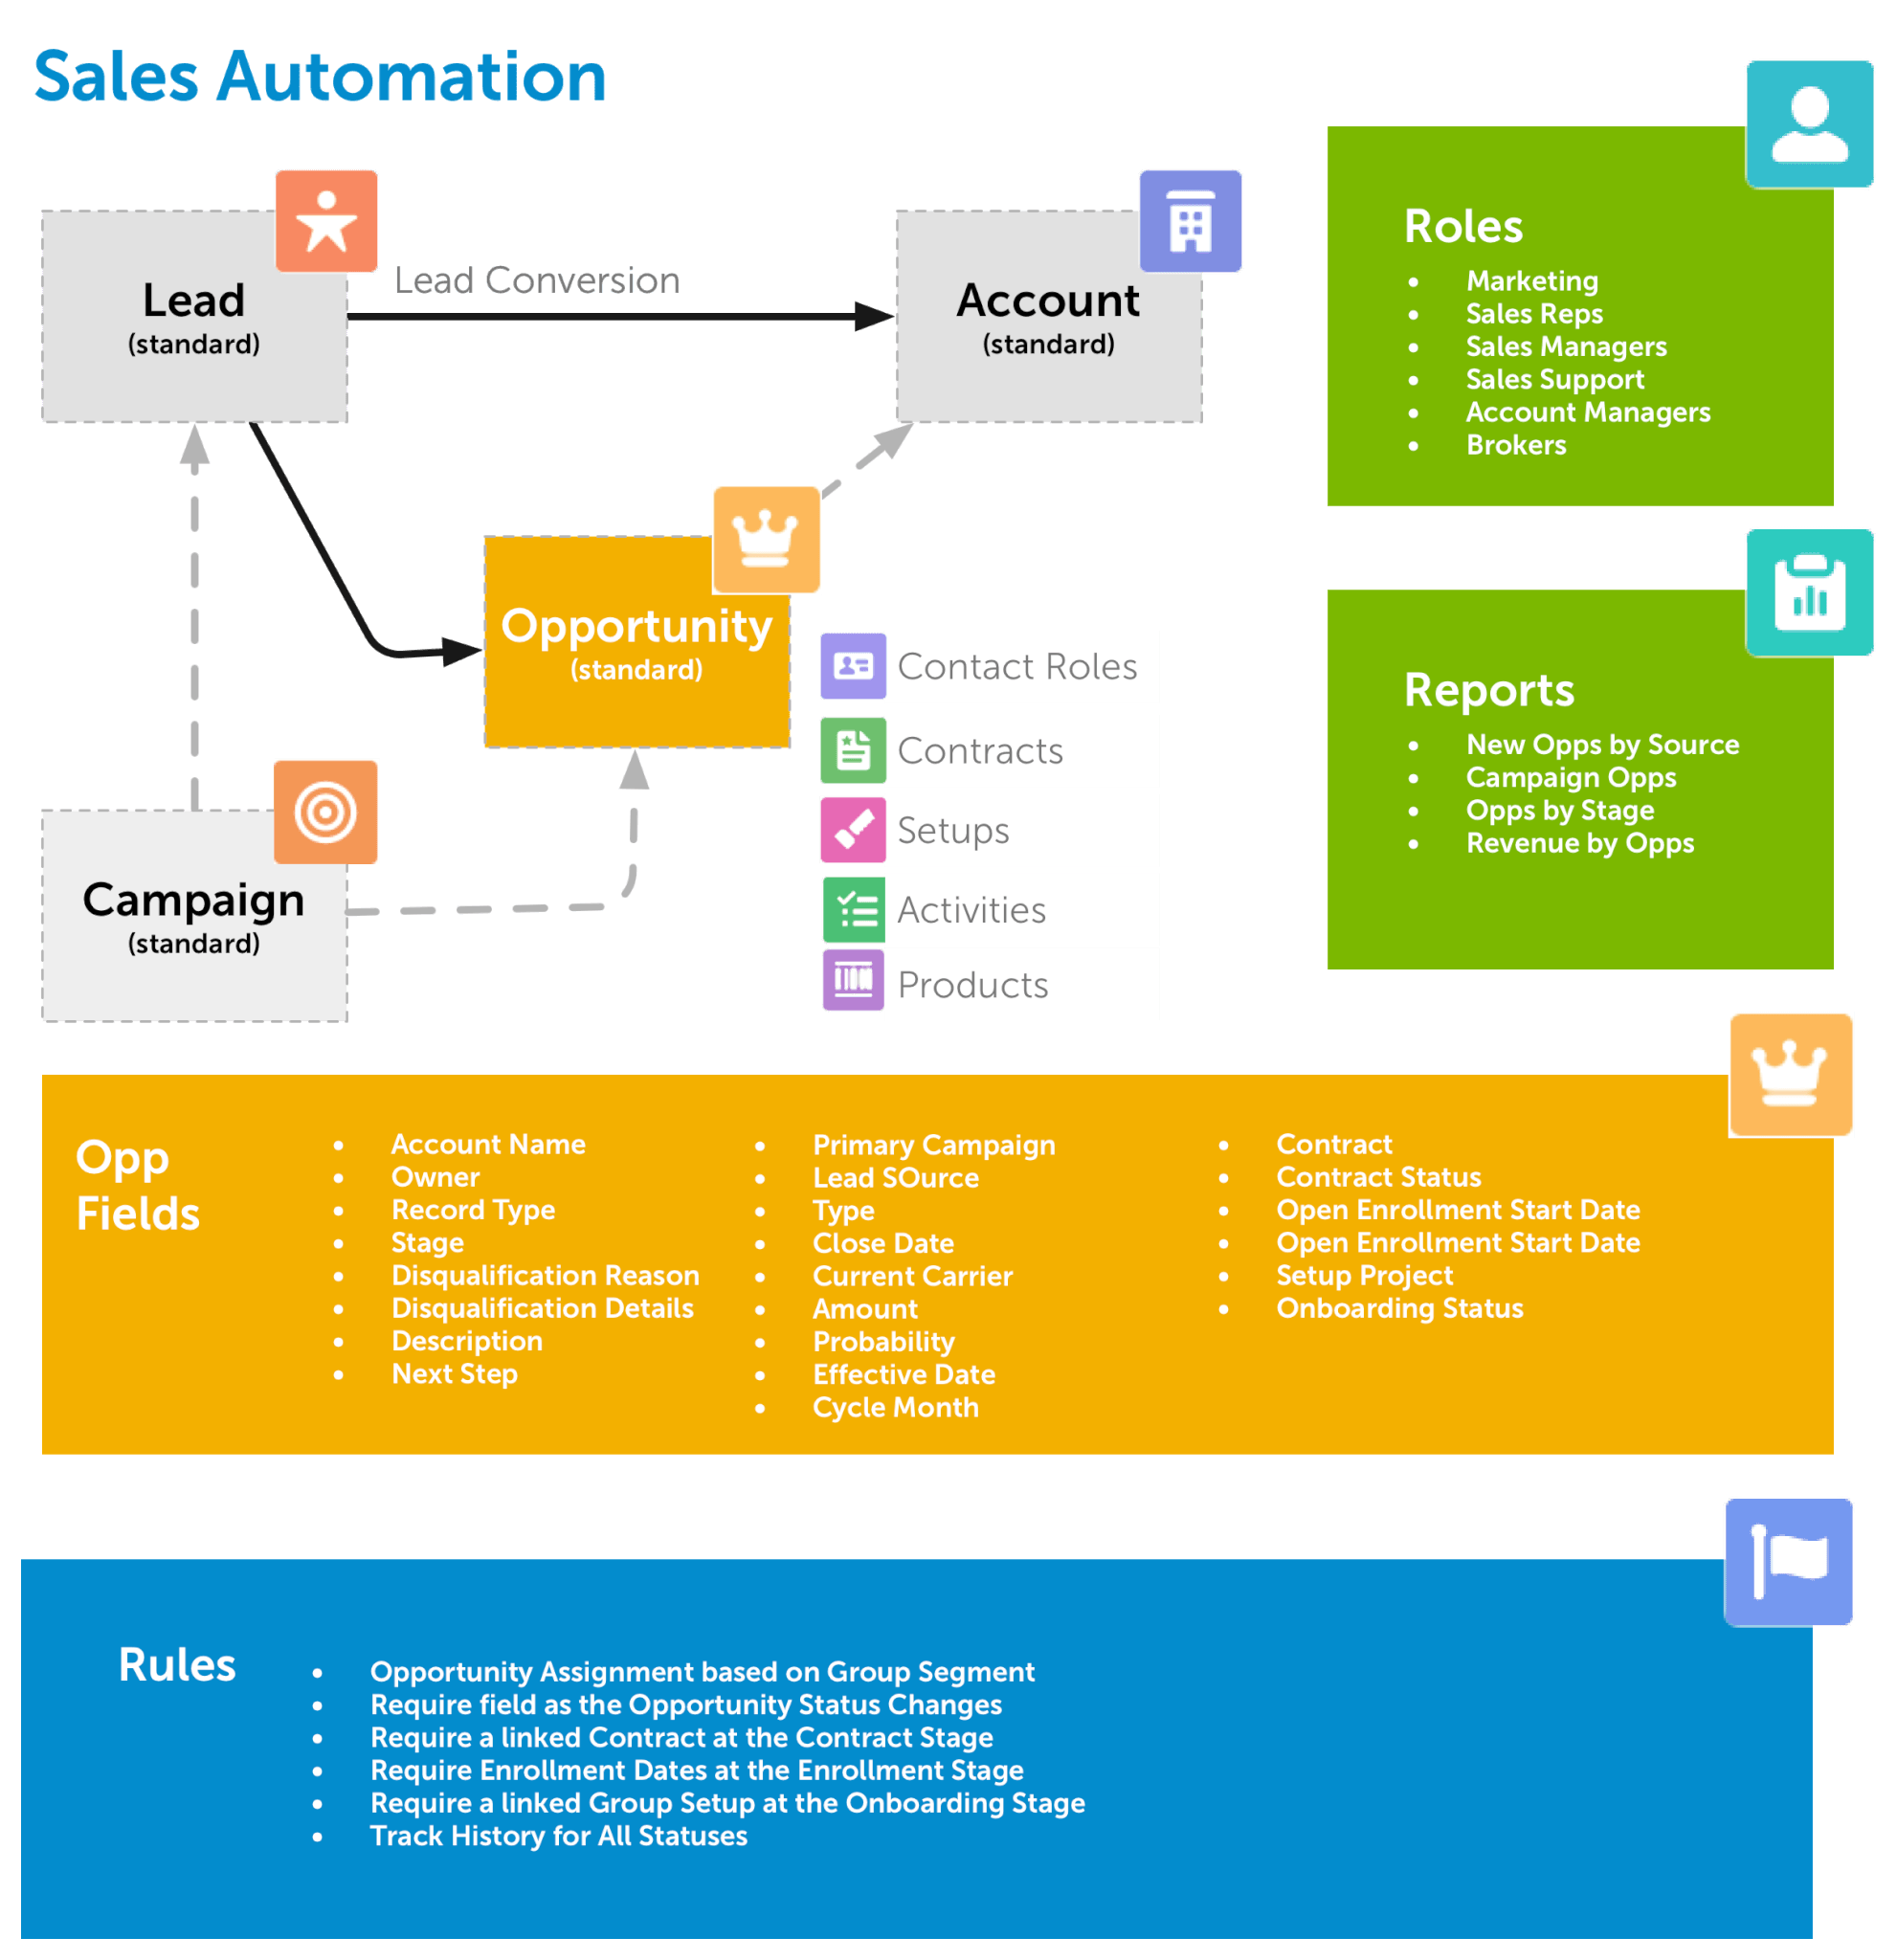 Health Insurance CRM - Sales Automation